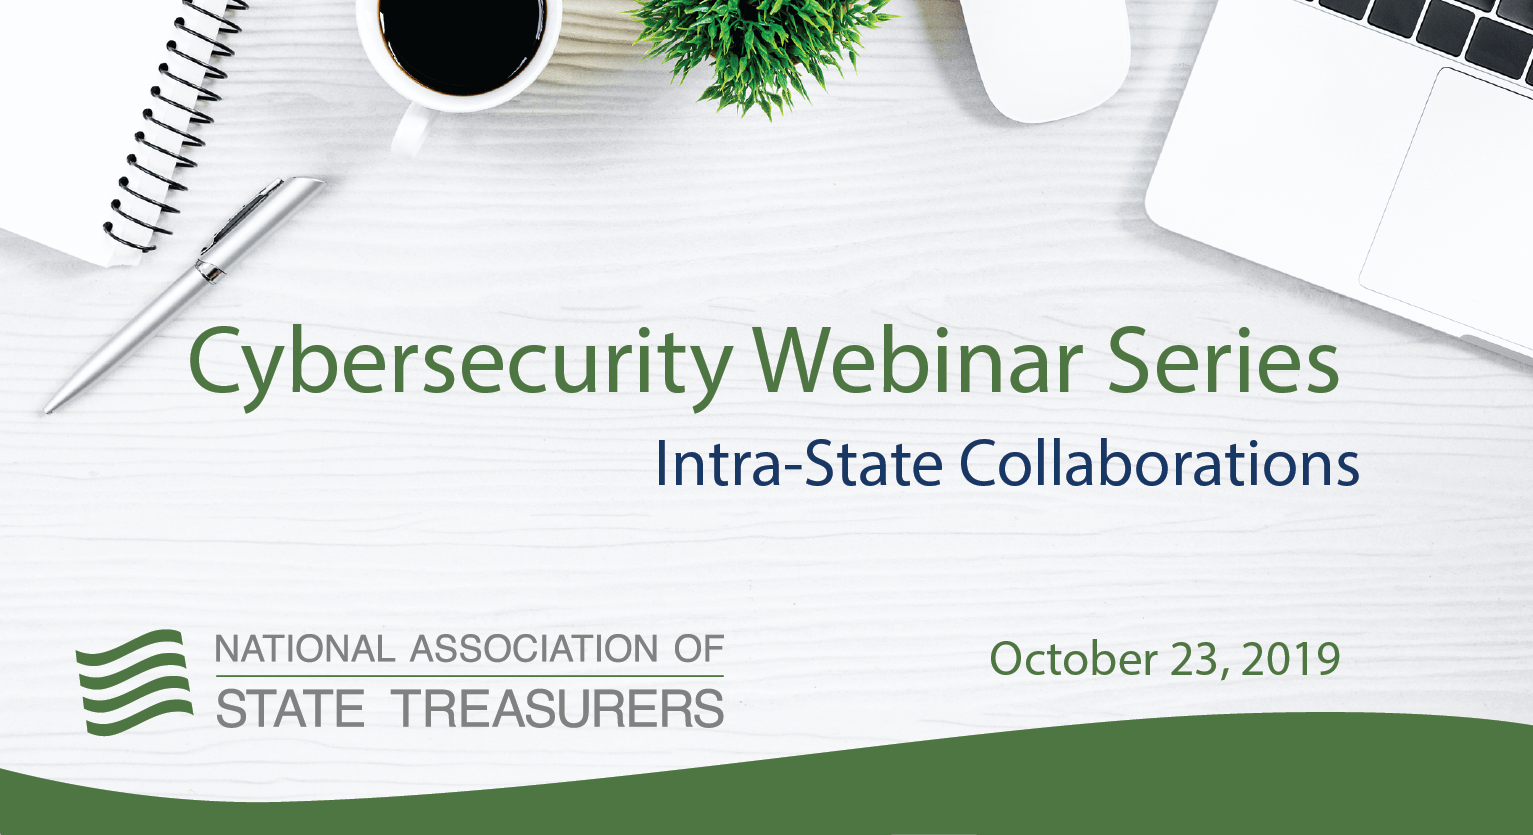 Cybersecurity Webinar Series - Intra-State Collaborations